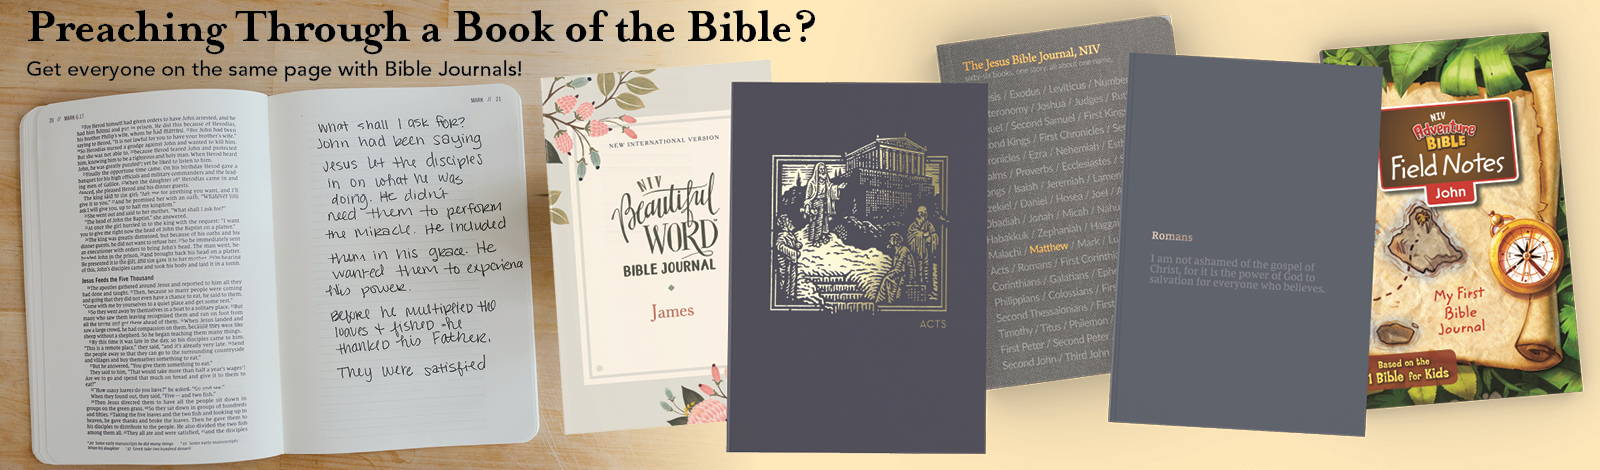 Preaching through a book of the Bible? Get everyone on the same page with Bible Journals!